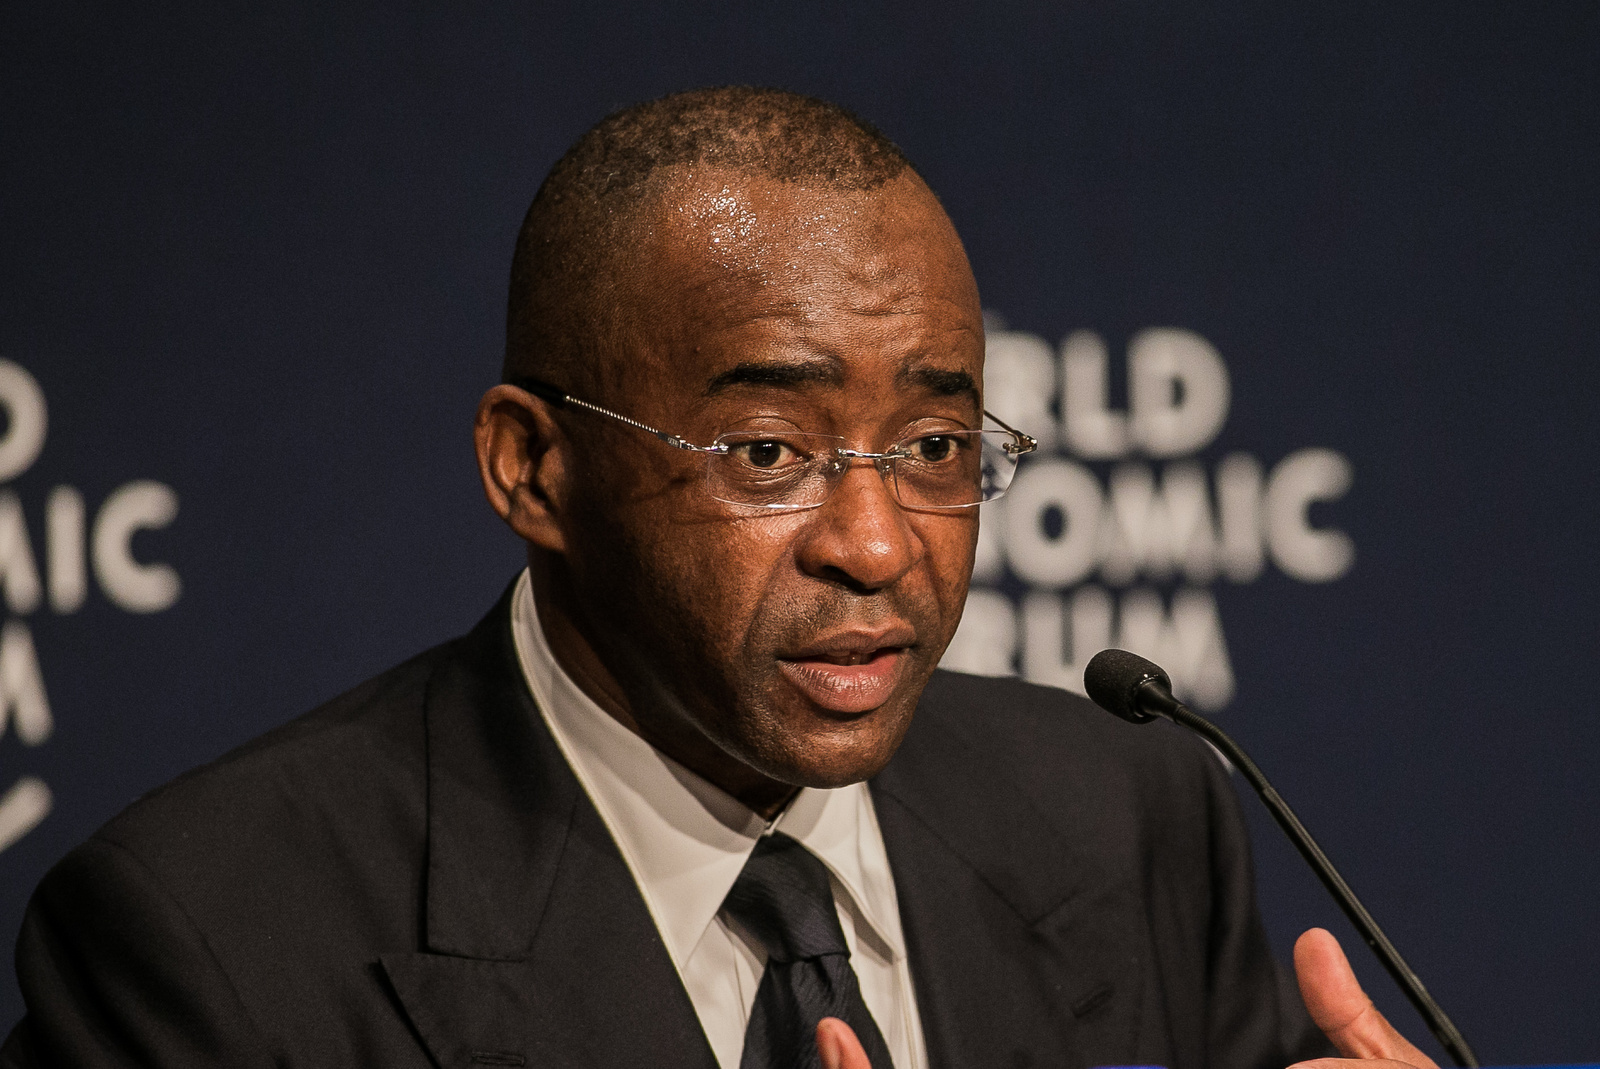 Building an efficient organization By Strive Masiyiwa ; Founder & Chairperson , Econet Wireless